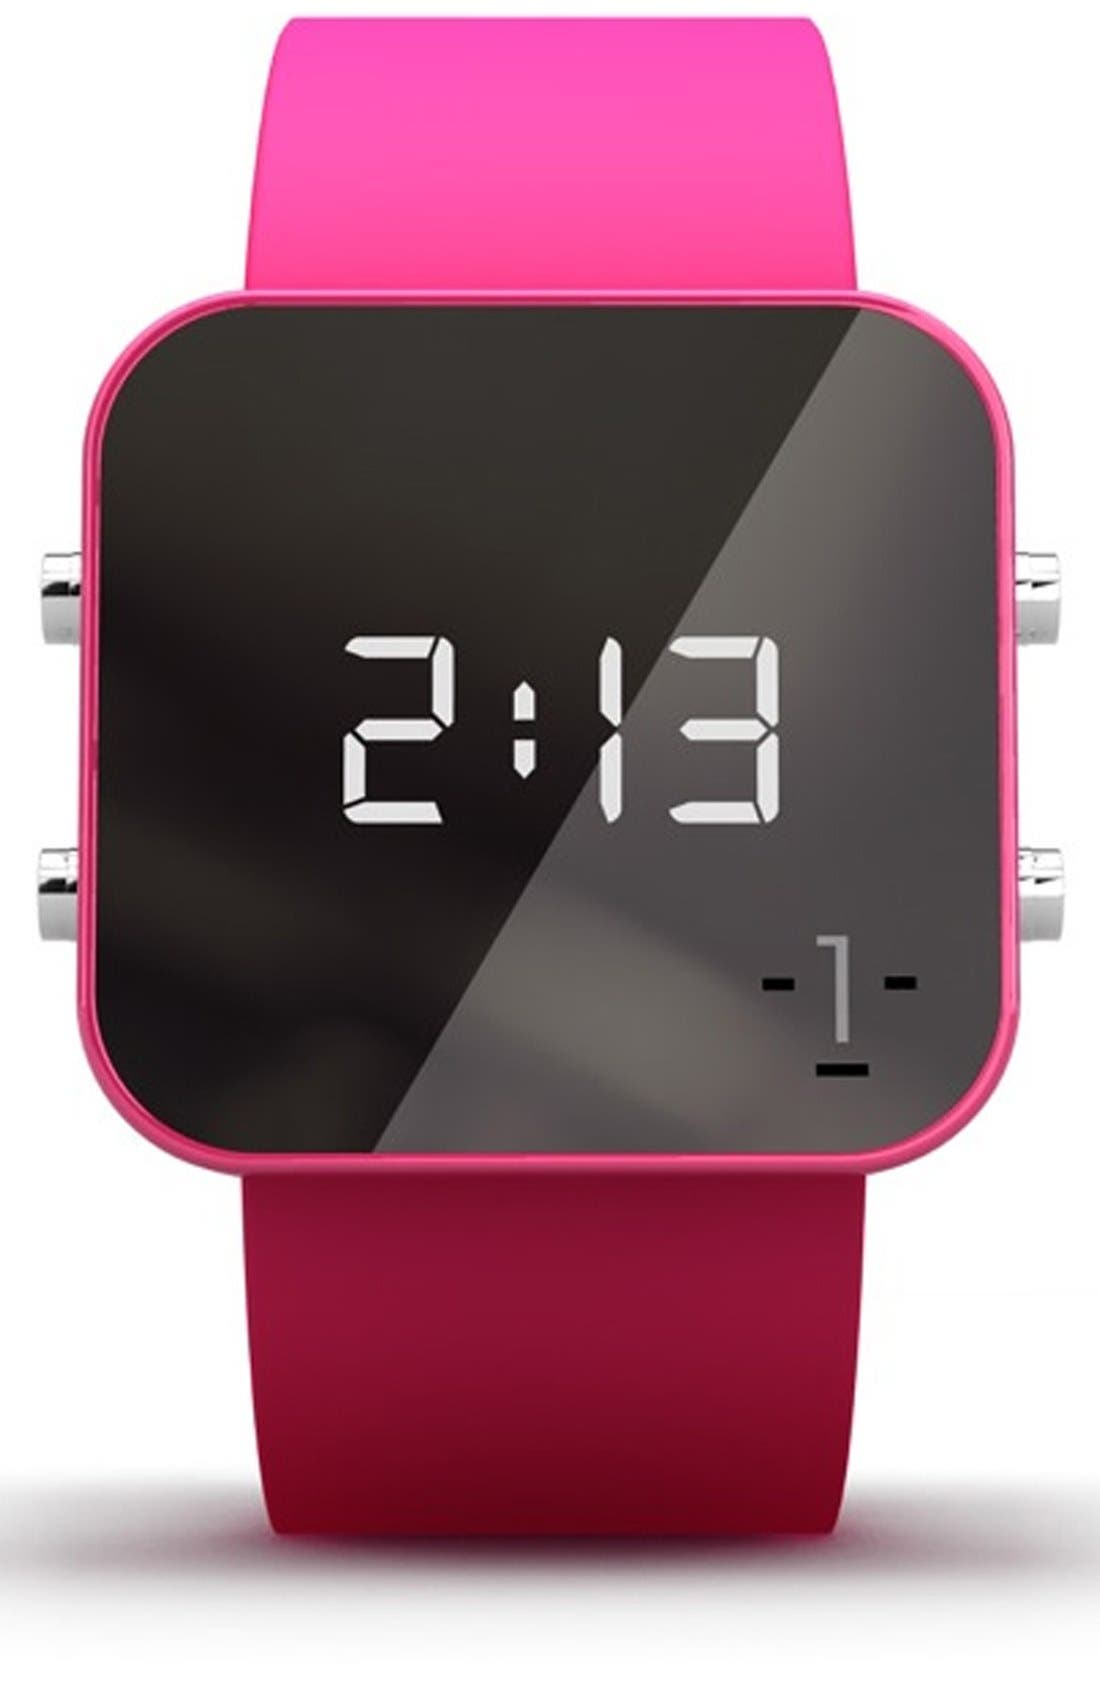 Main Image - 1:Face 'Breast Cancer' Square Digital Silicone Strap Watch, 38mm